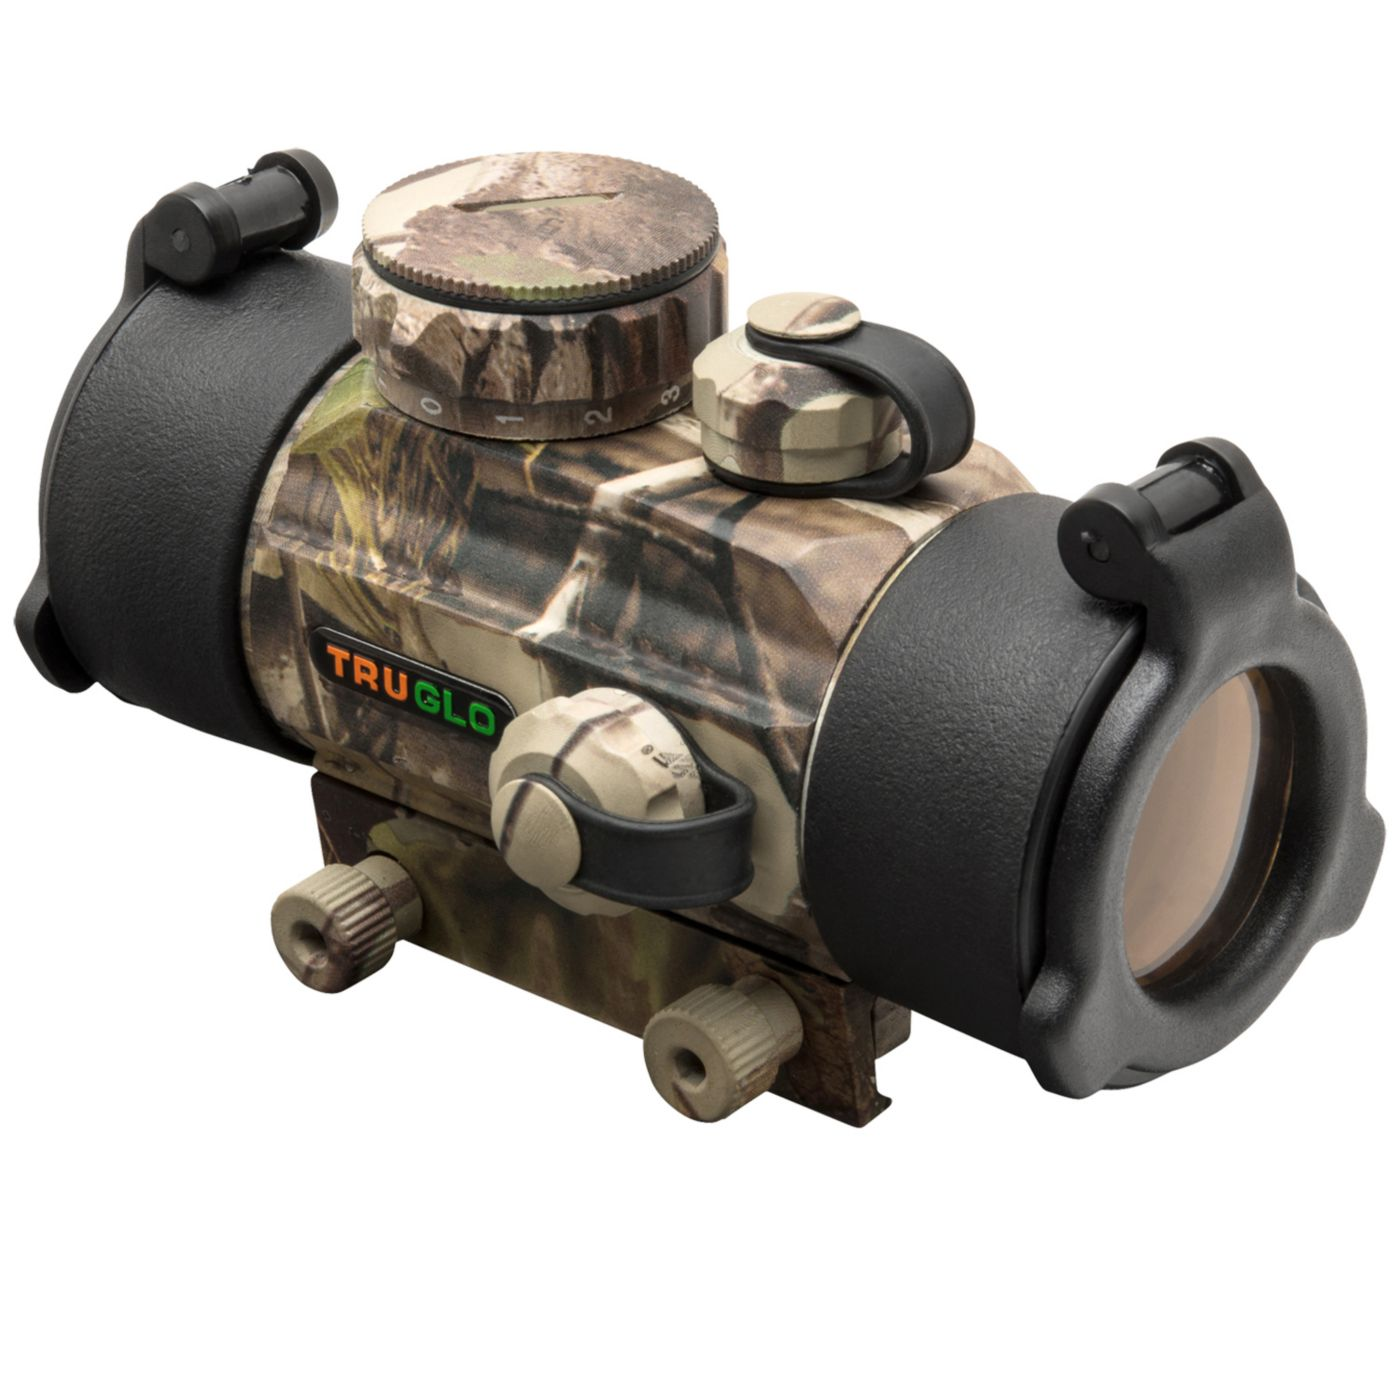 TRUGLO 30mm Red Dot Crossbow Scope